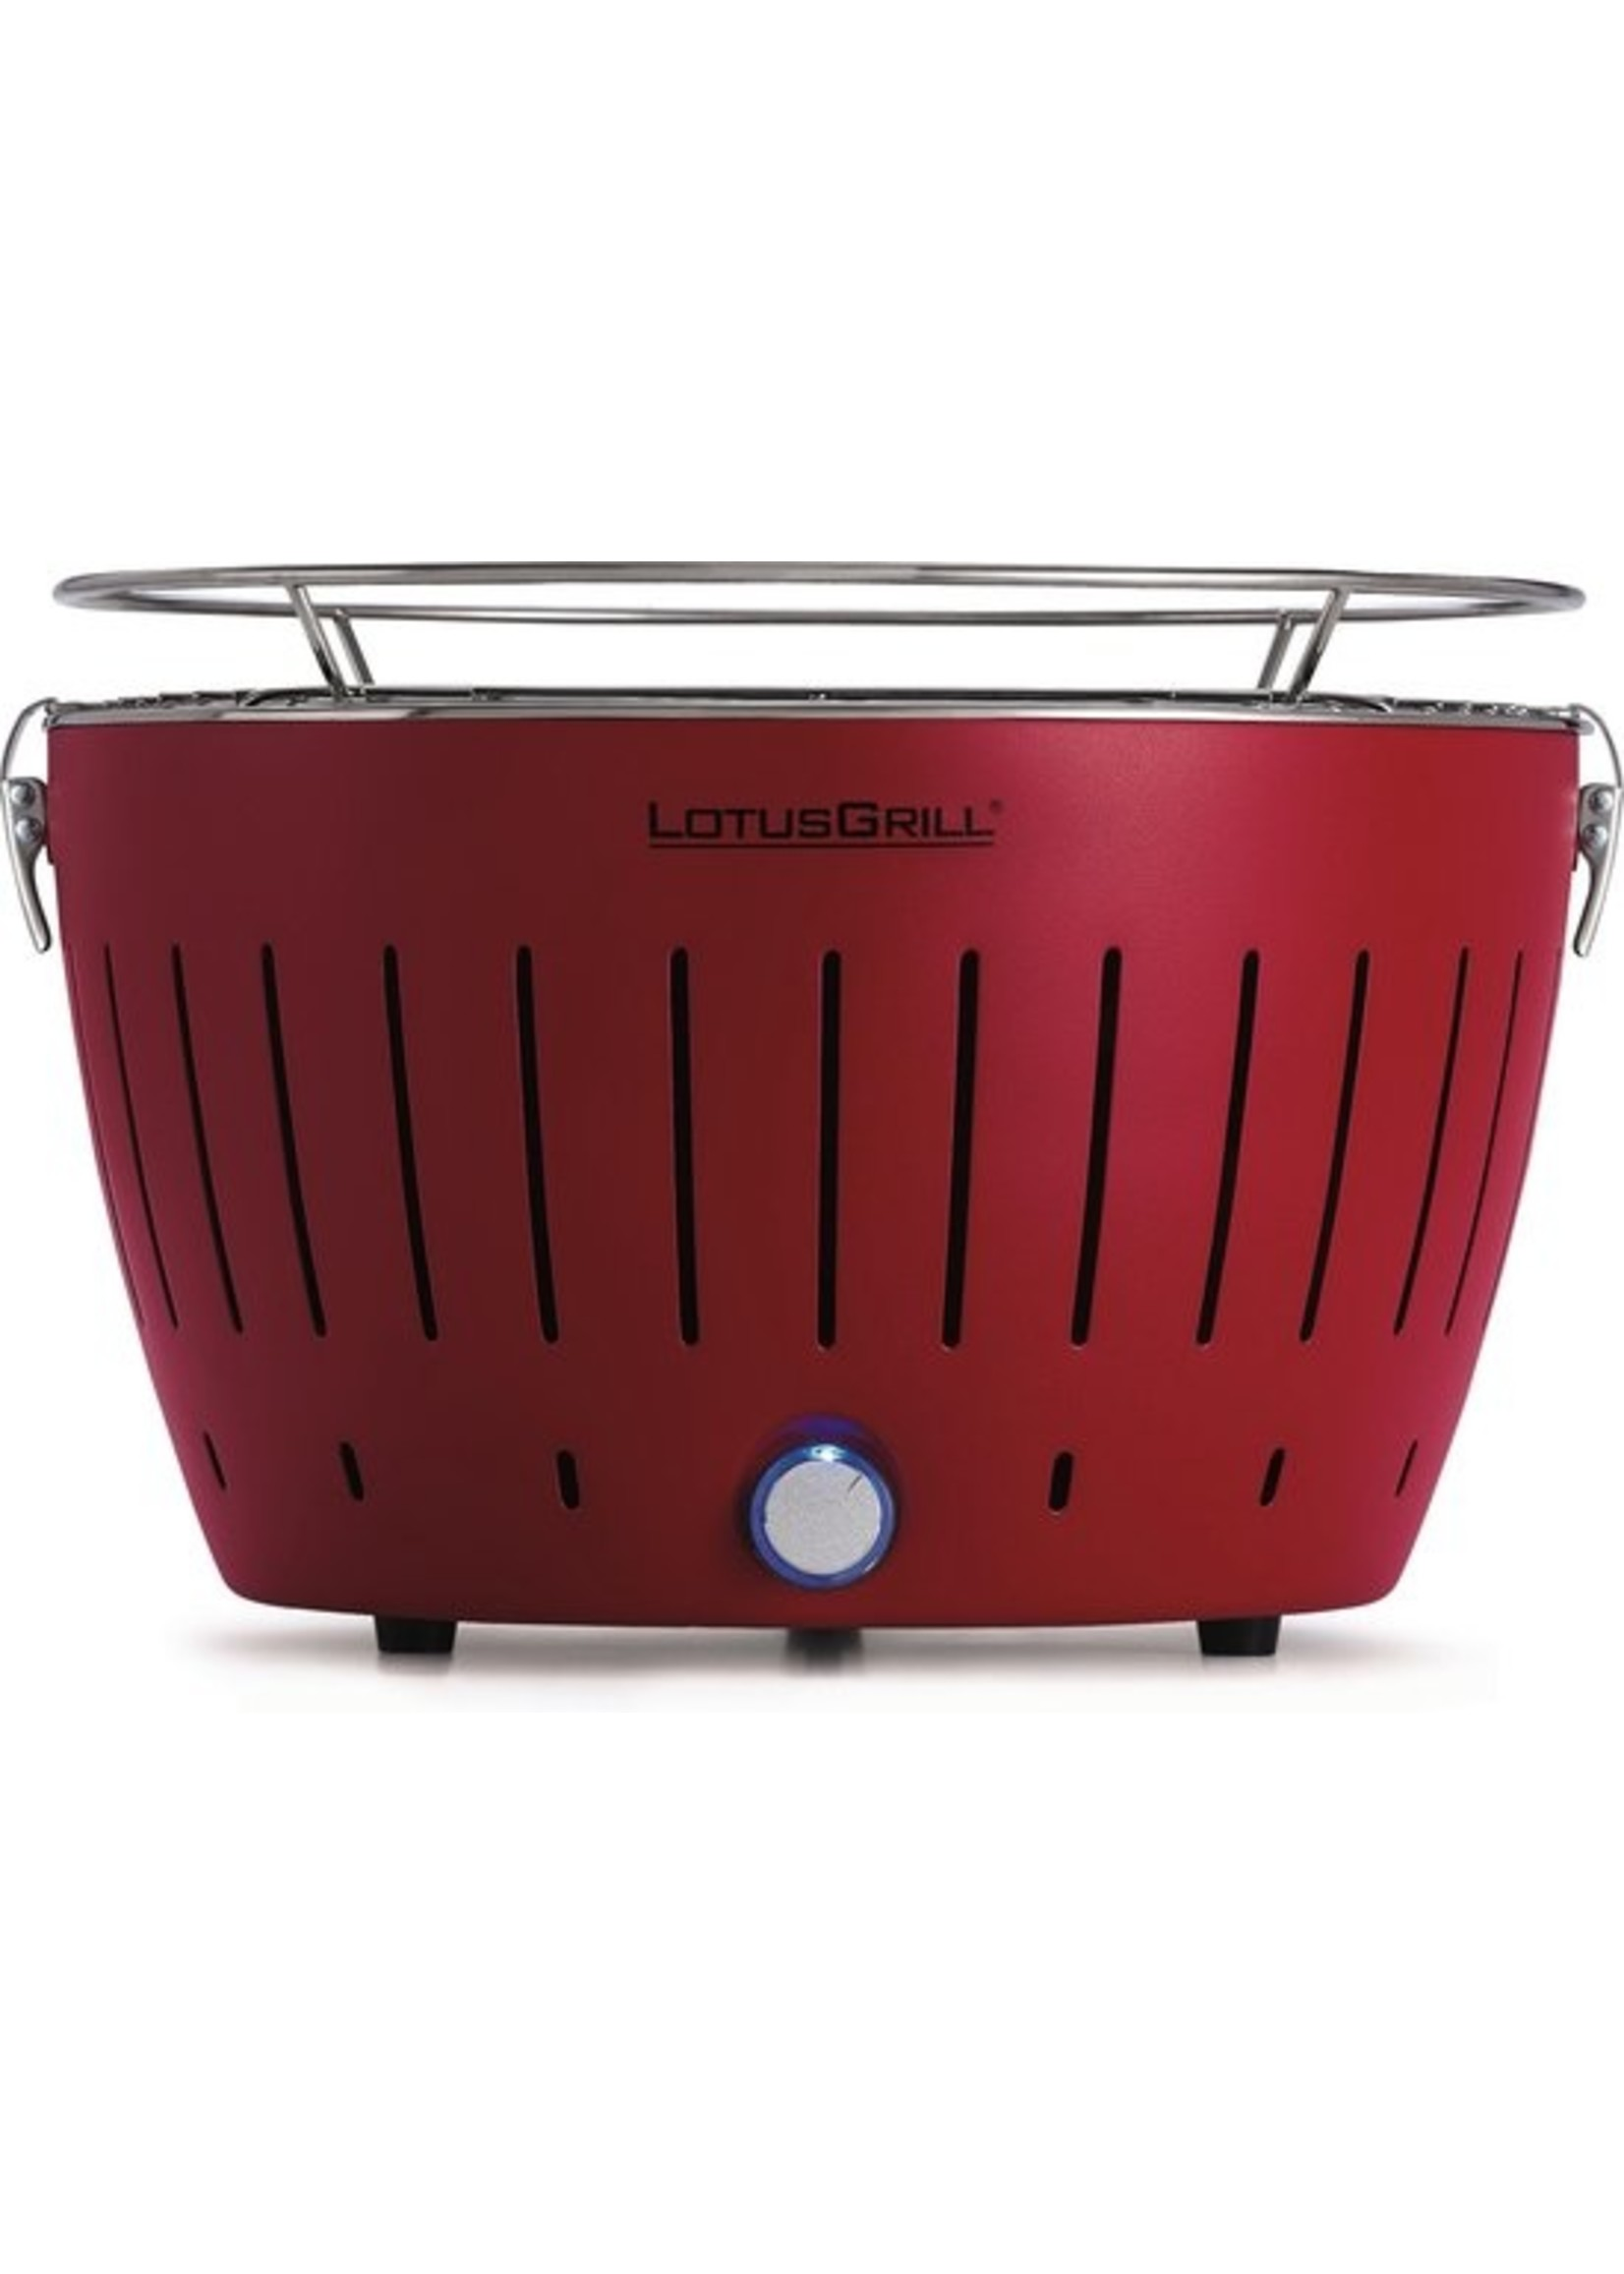 LotusGrill LotusGrill Classic Hybrid Tafelbarbecue - �0mm - Rood